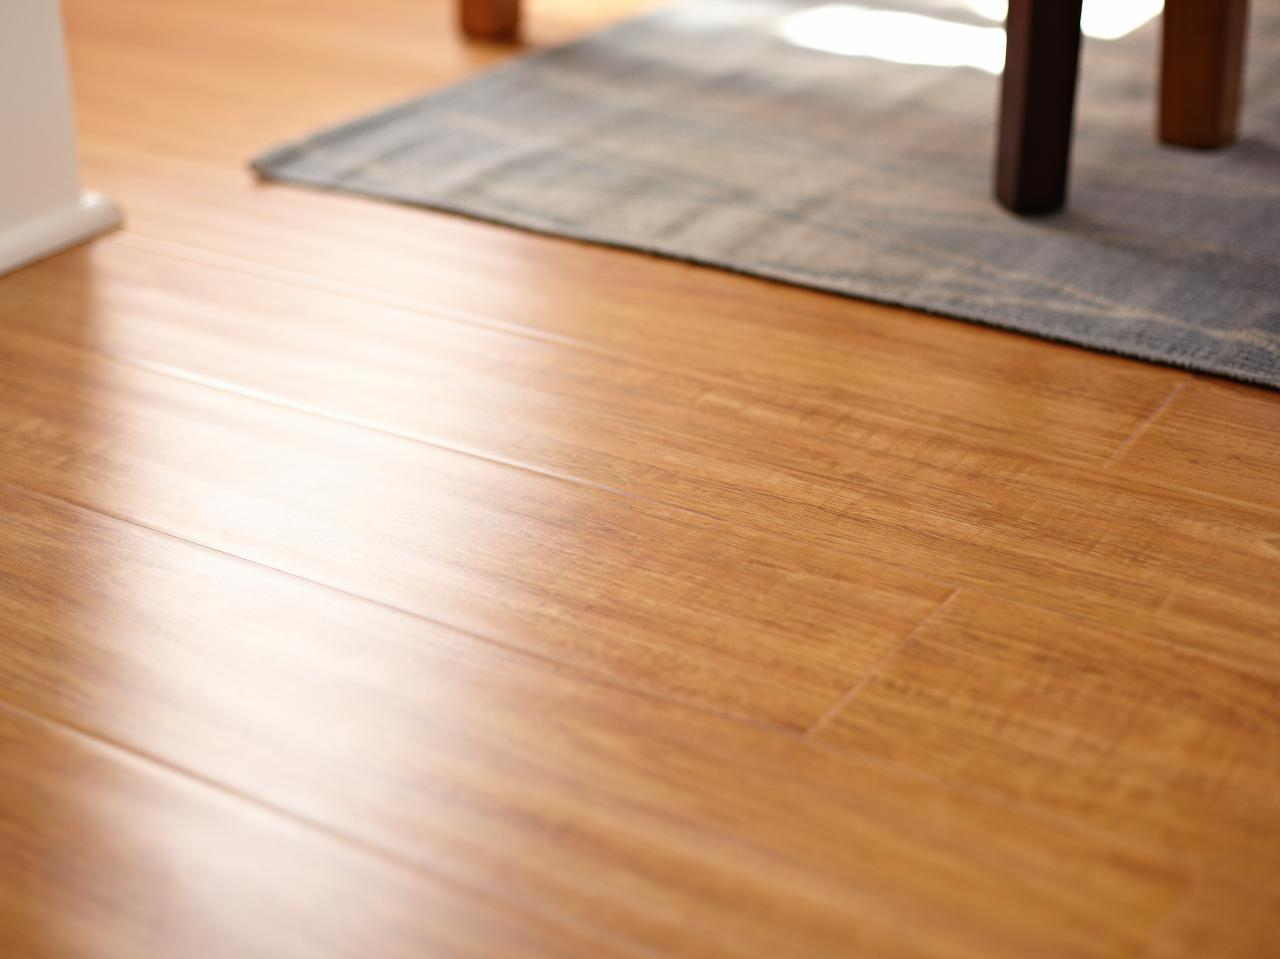 How to clean and maintain laminate floors diy for Hard laminate flooring